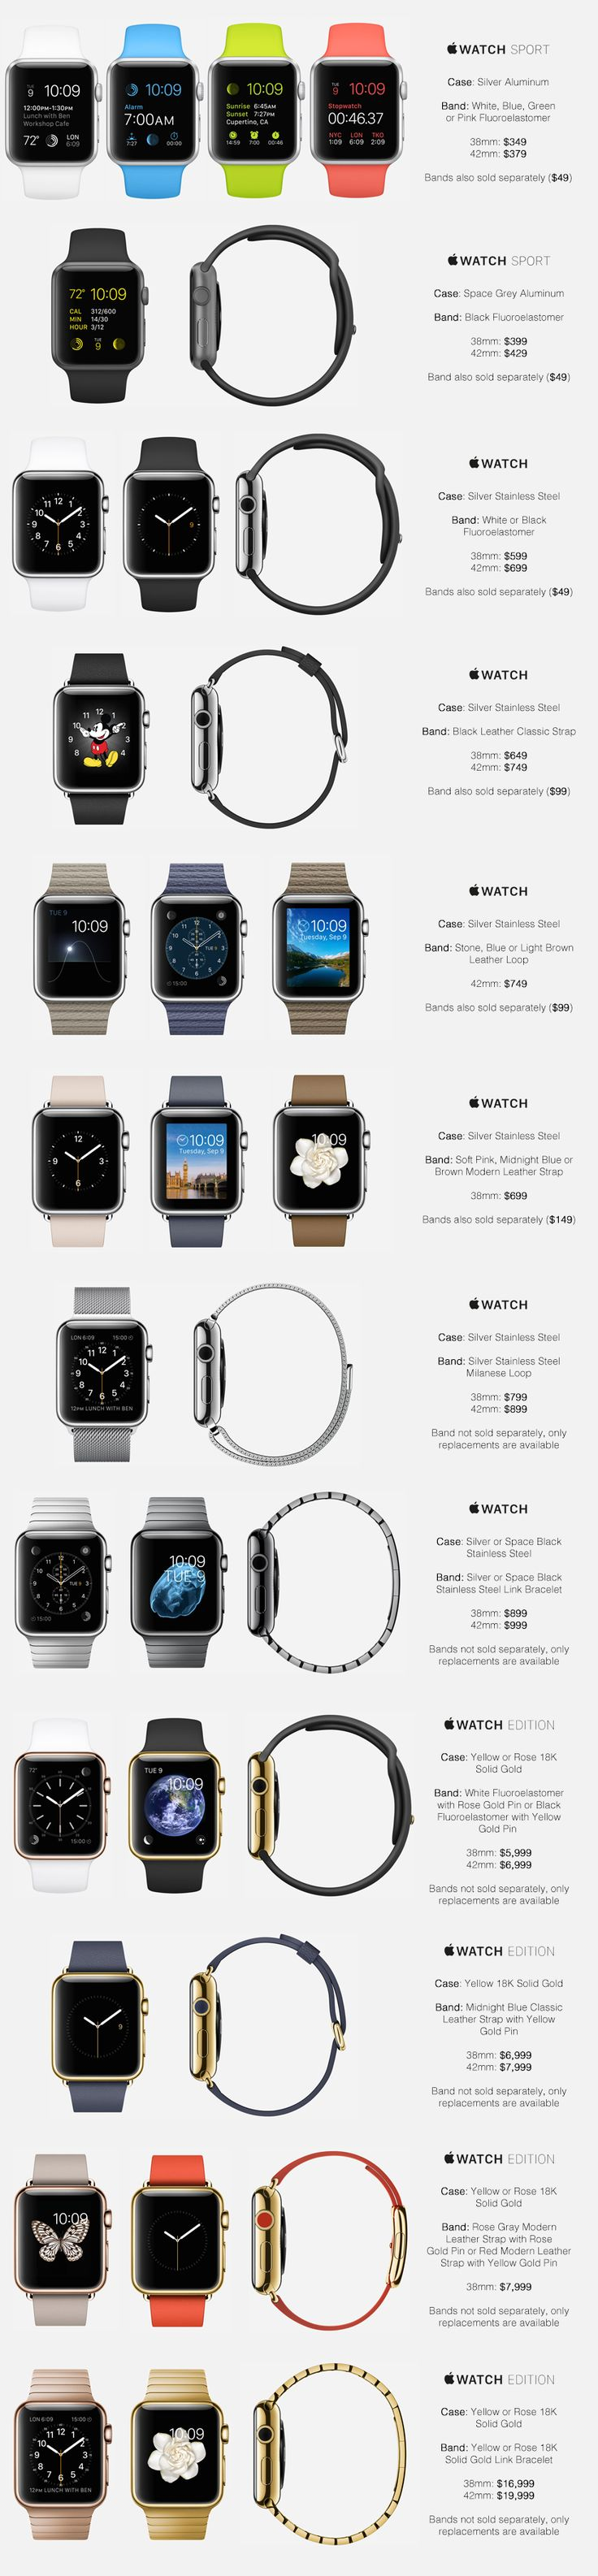 An In-Depth Look at Apple Watch Band Options and Potential Pricing - Mac Rumors